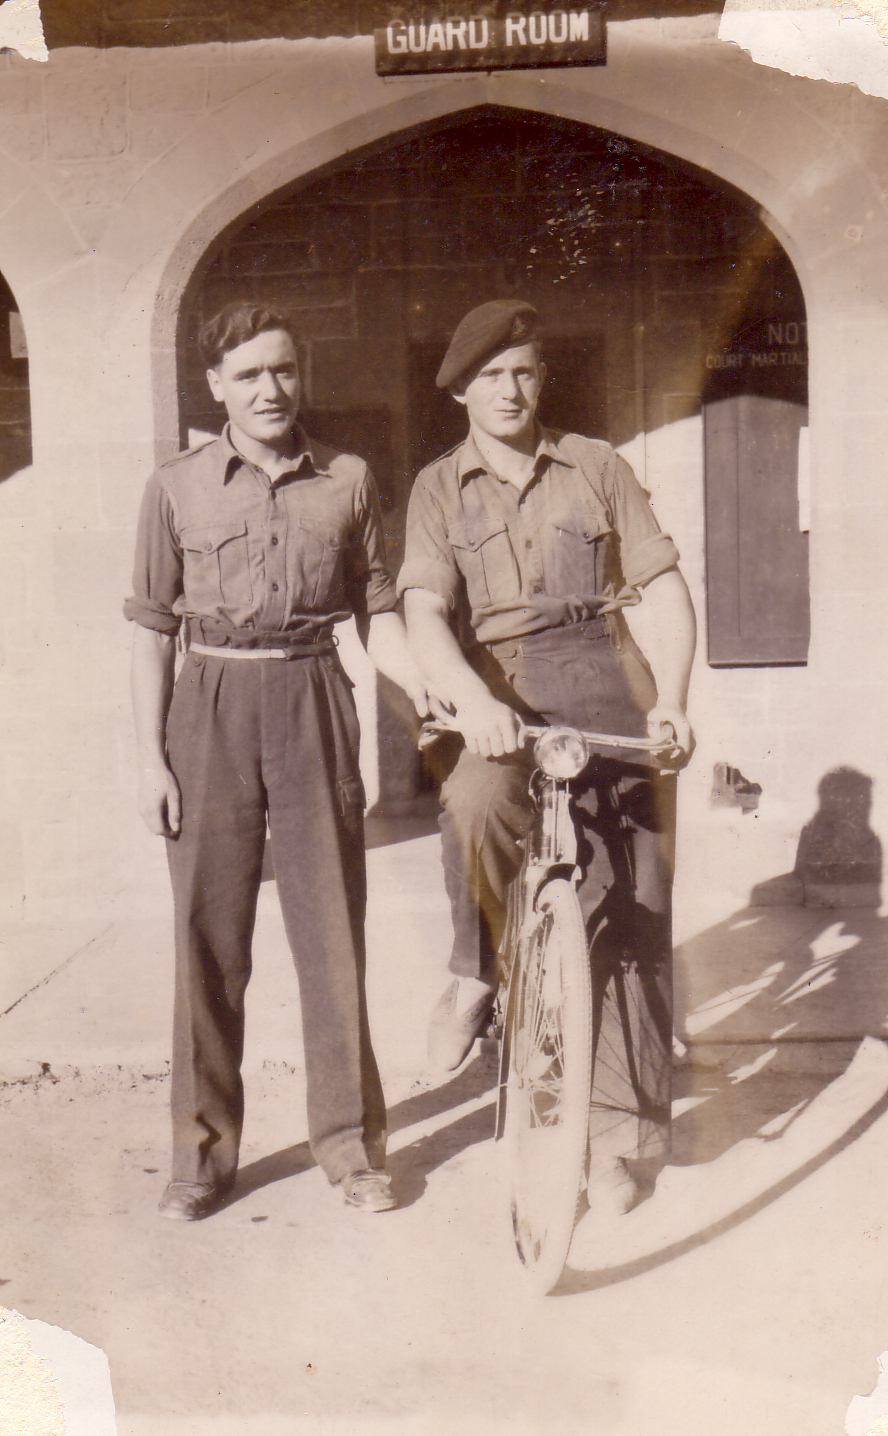 Two Off-Duty Soldiers At Entrance To Guard Room 1950